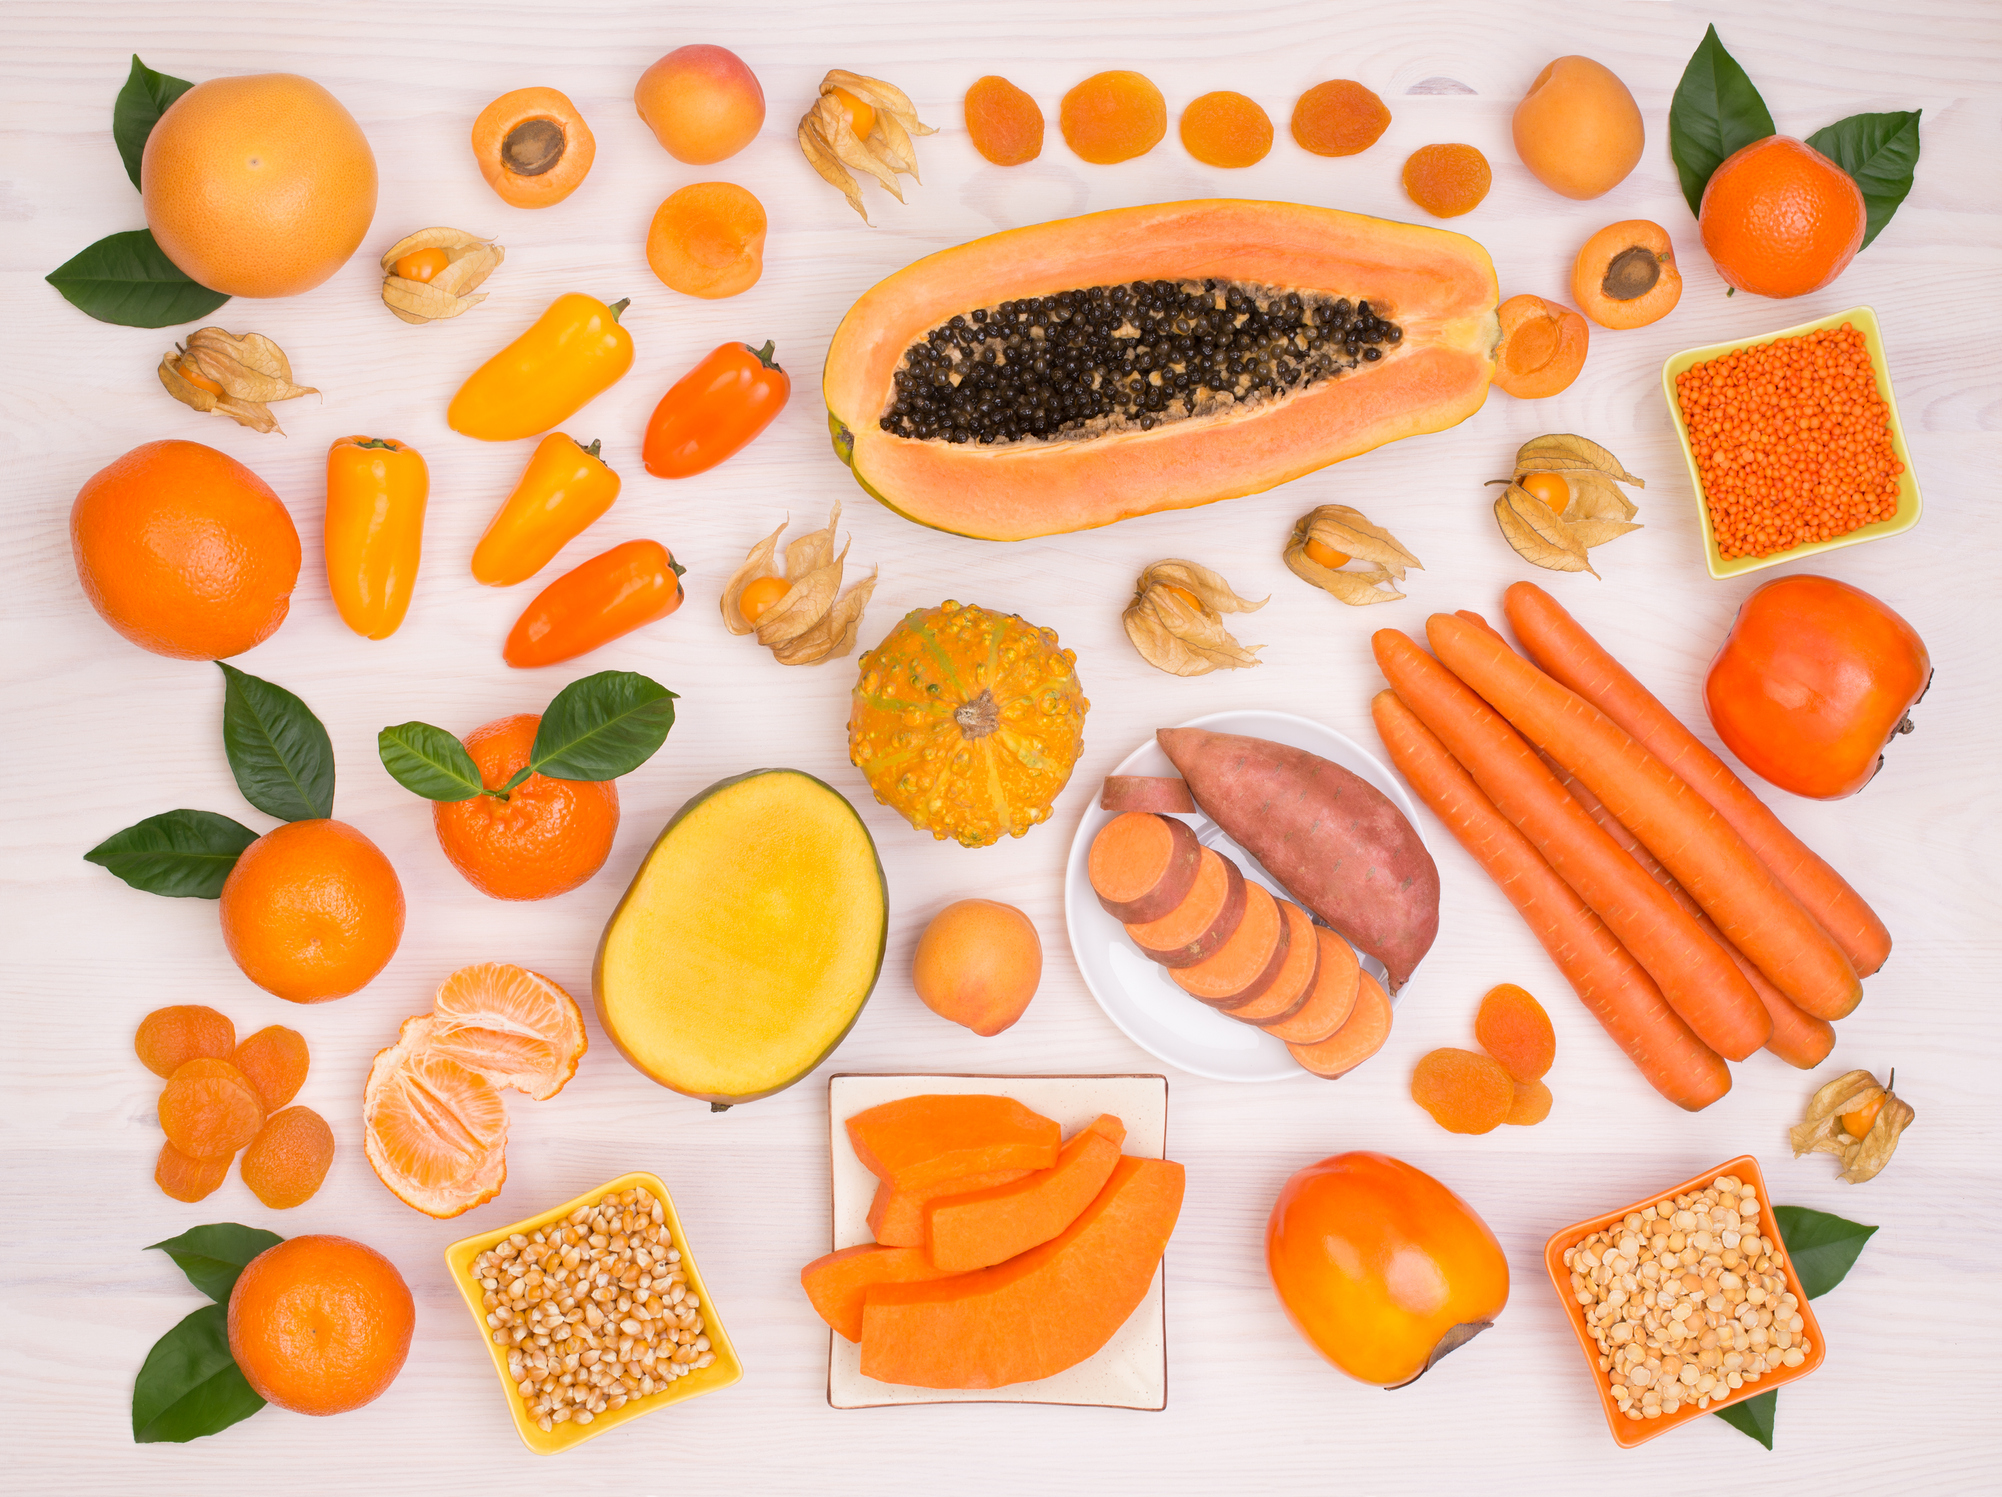 The common nutrient that could help fight obesity